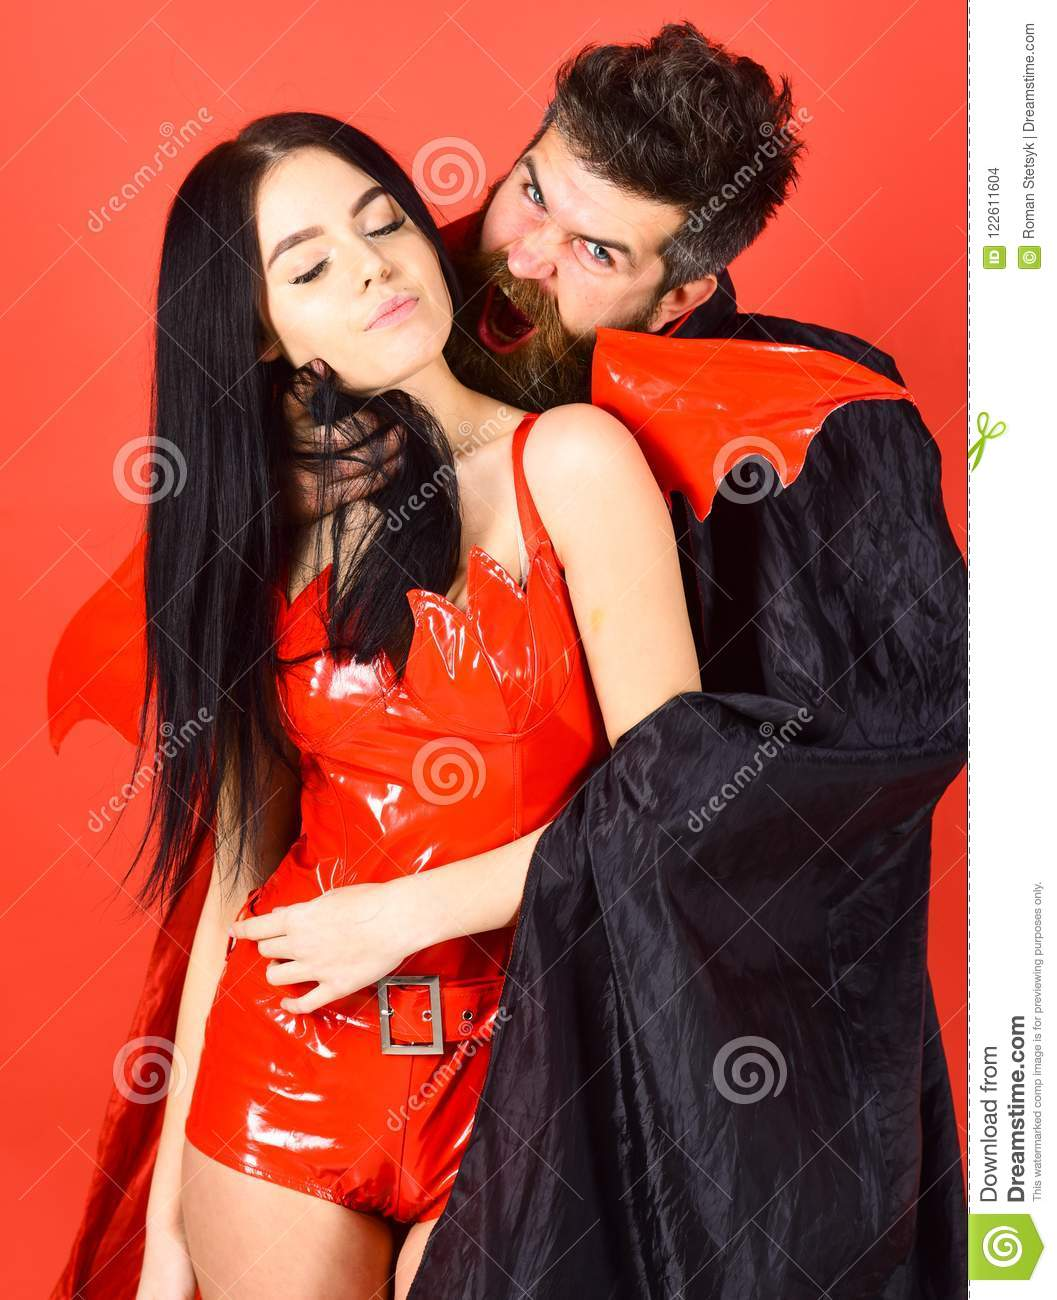 Vampire bites female neck. Couple in love play role game. Vampires victim concept. Man and woman dressed like vampire